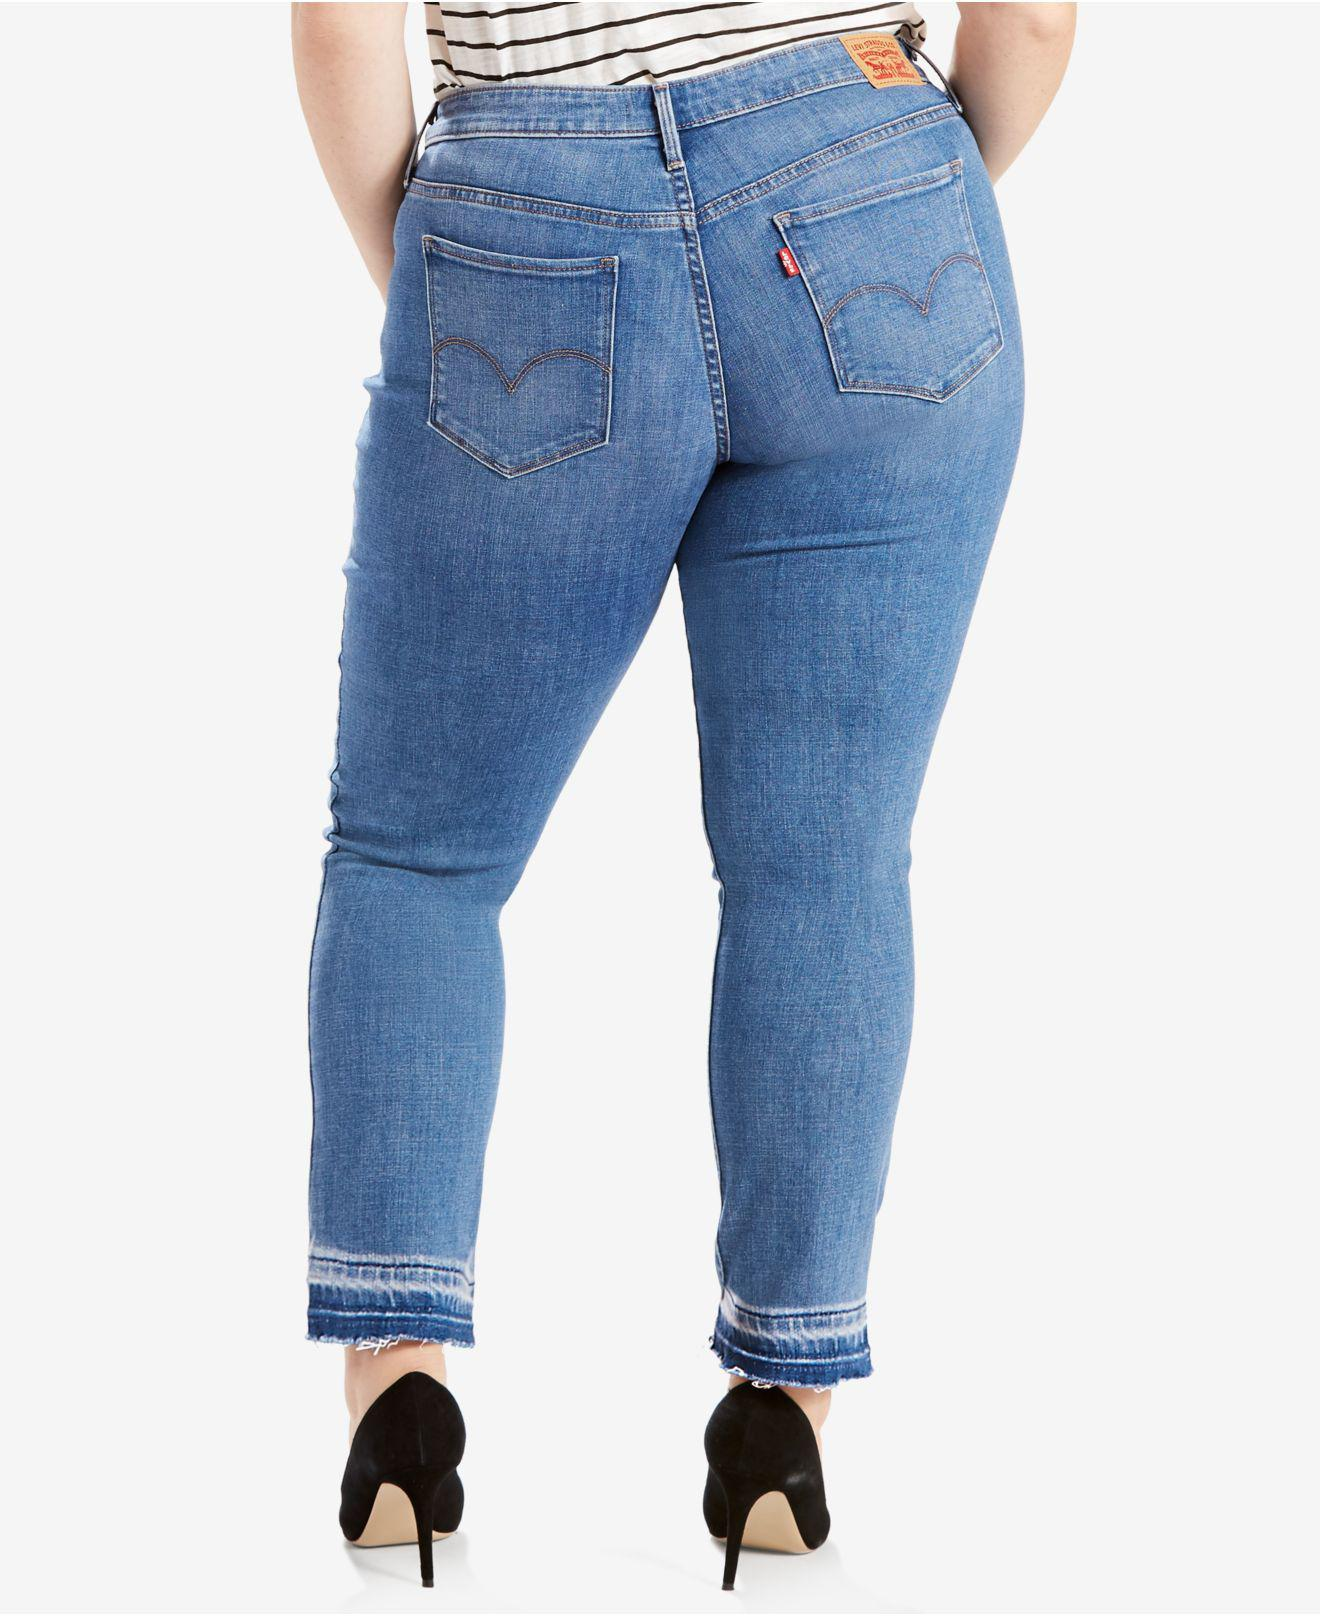 8a4e20451aa Lyst - Levi s Plus Size 311 Shaping Skinny Jeans in Blue